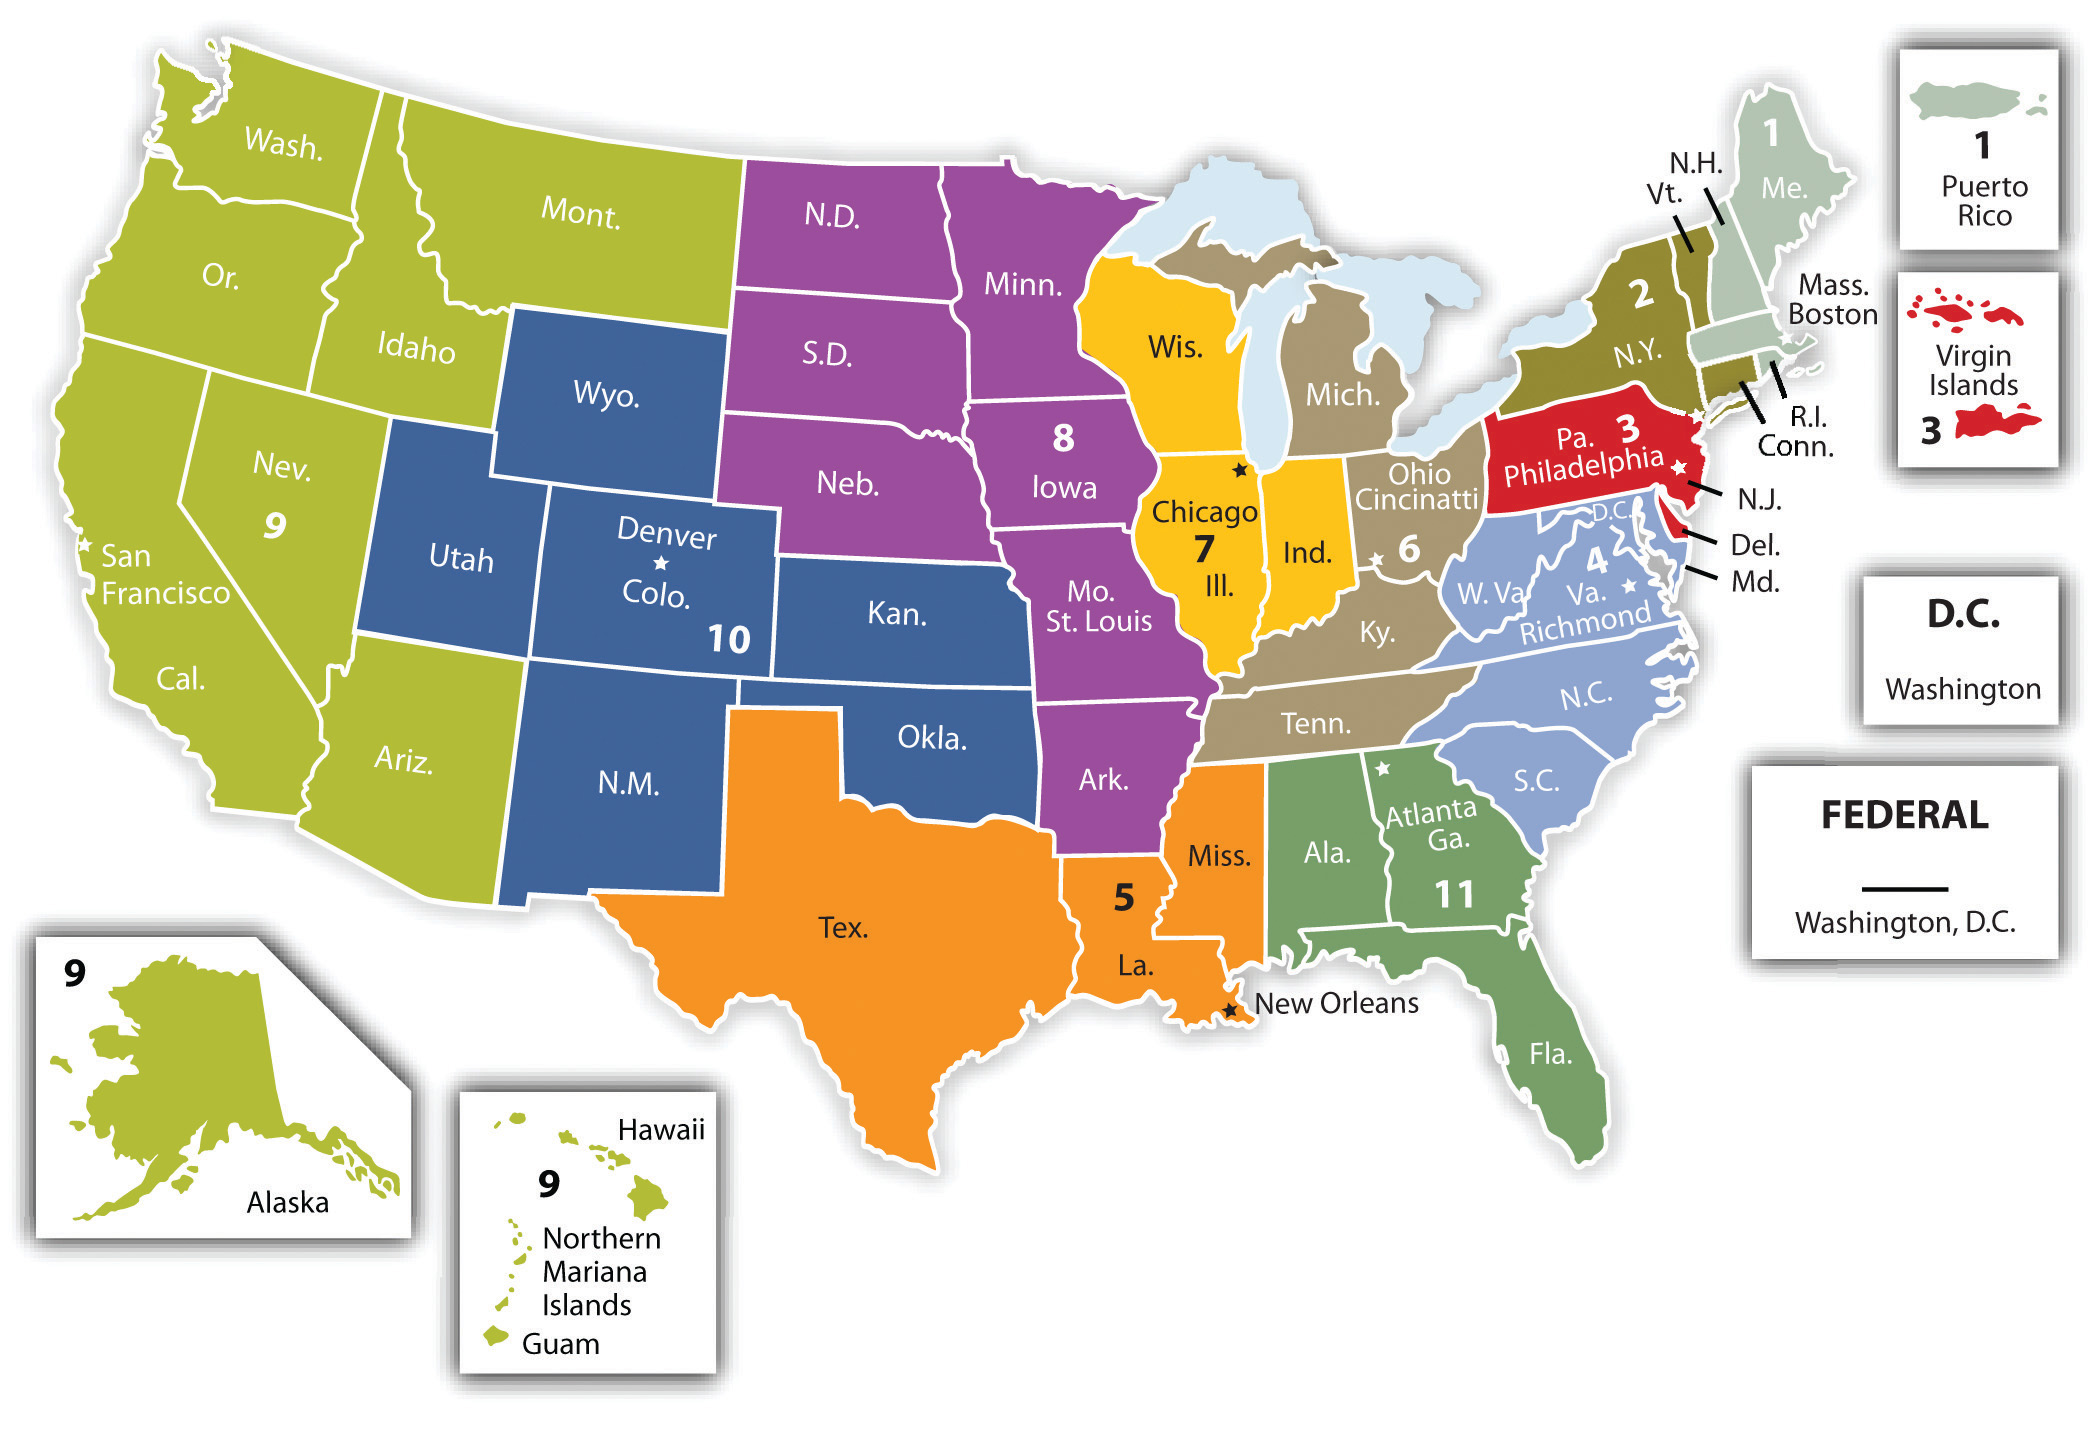 Geographic Boundaries PowerPoint Presentation How To Lawfully - Map of us circuit courts